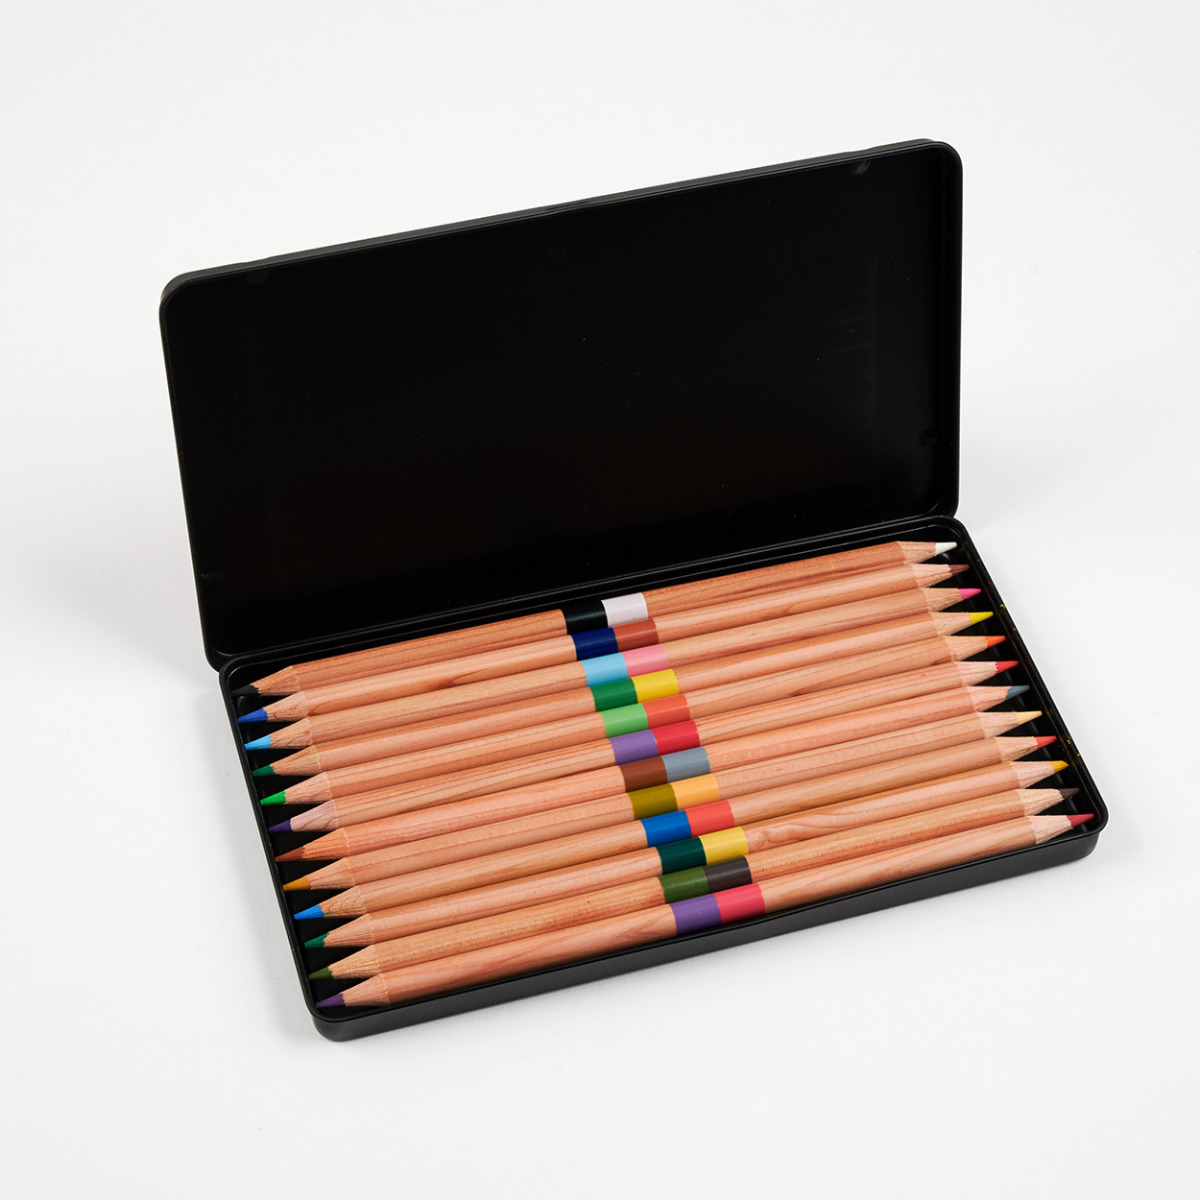 Plate of Peaches box of pencils